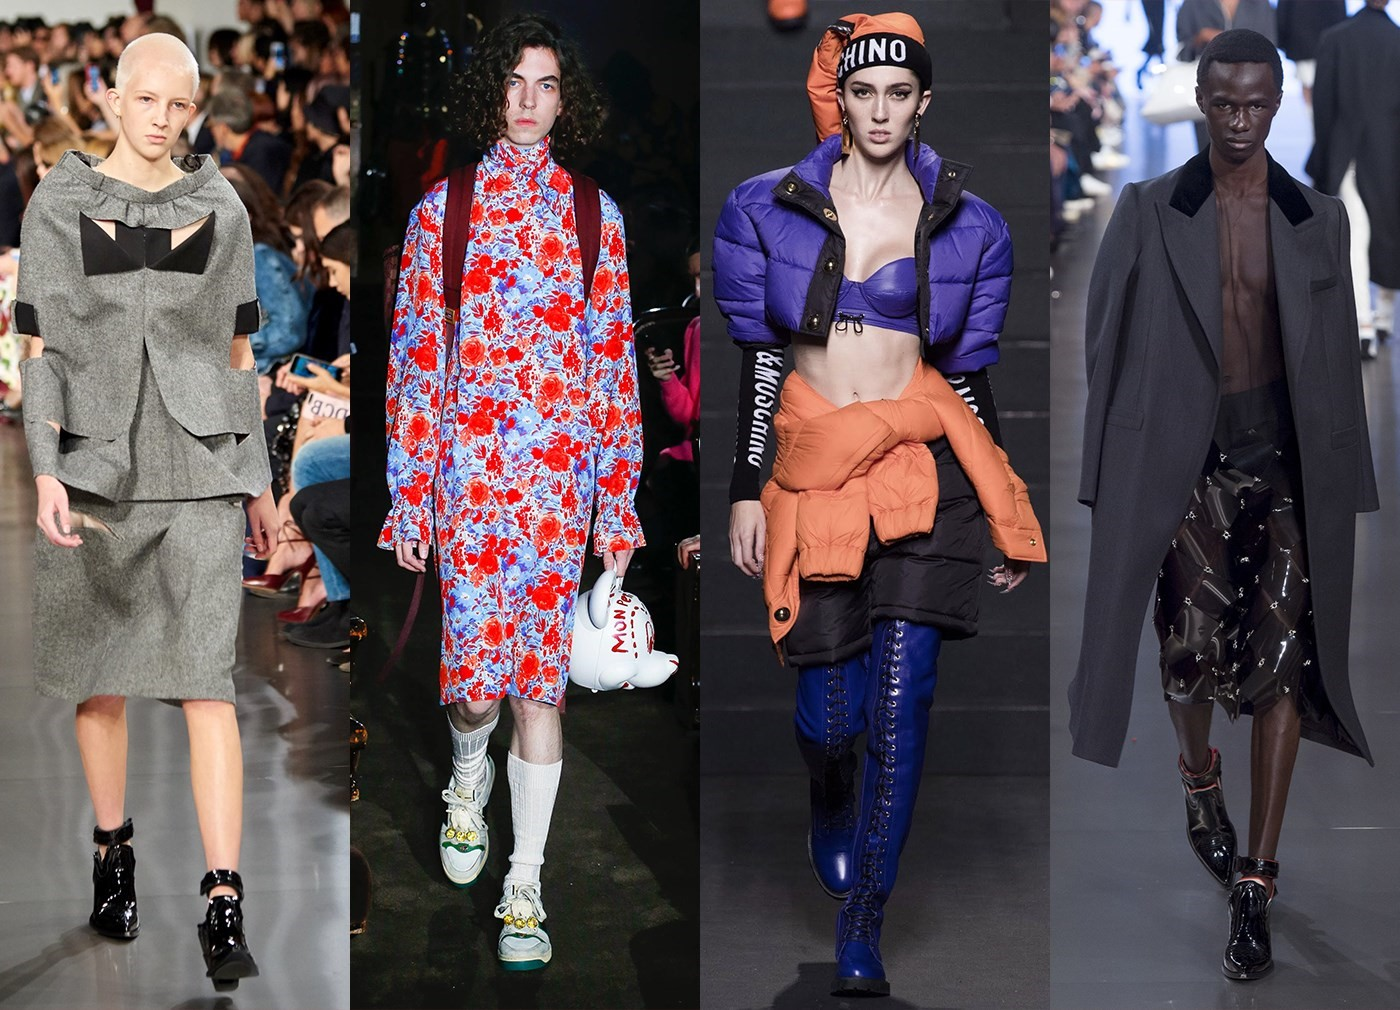 Trans LGBTQ visibility in the fashion industry 3